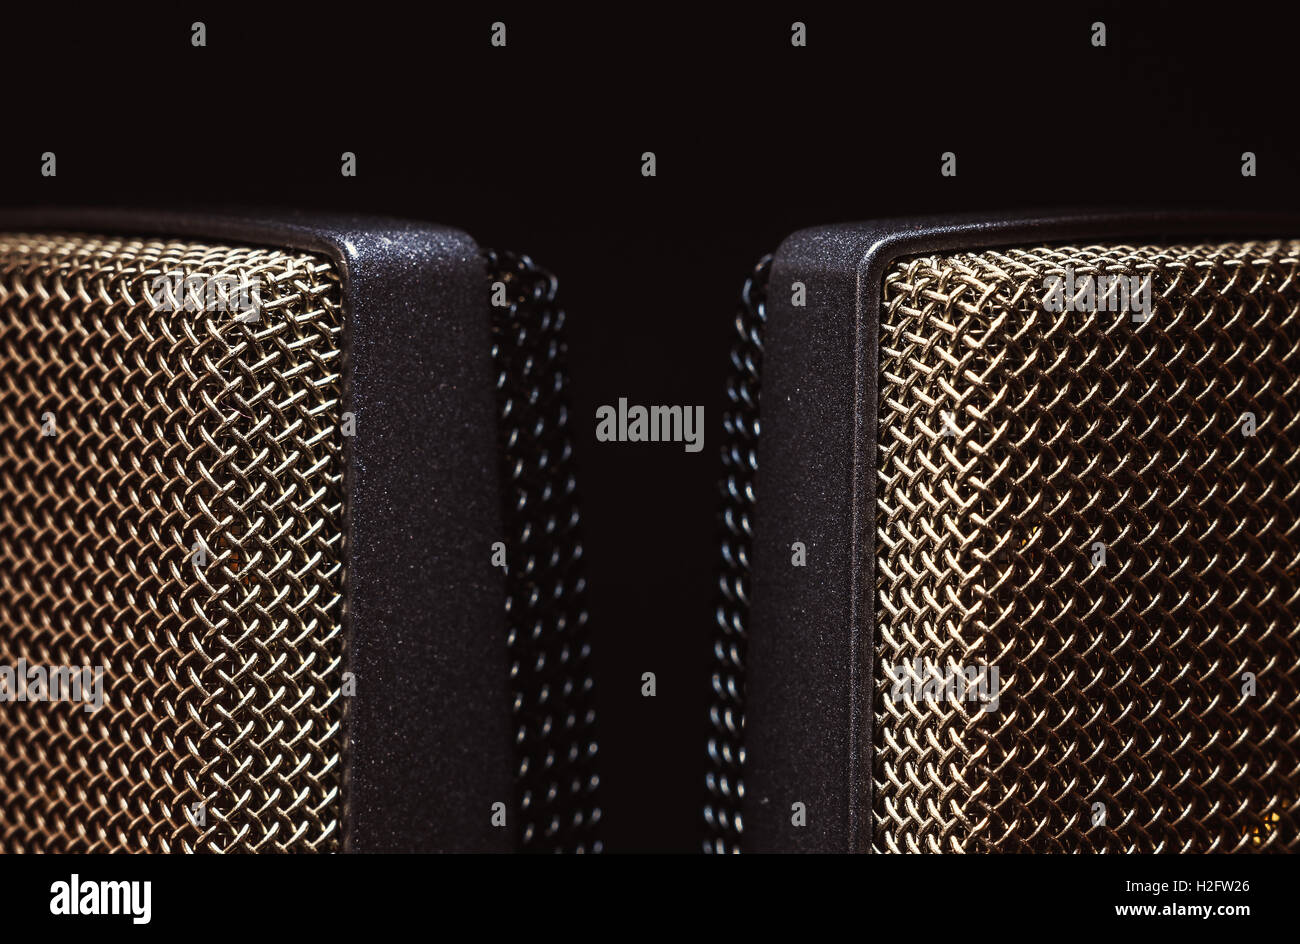 Details of two studio microphones, on black background. - Stock Image